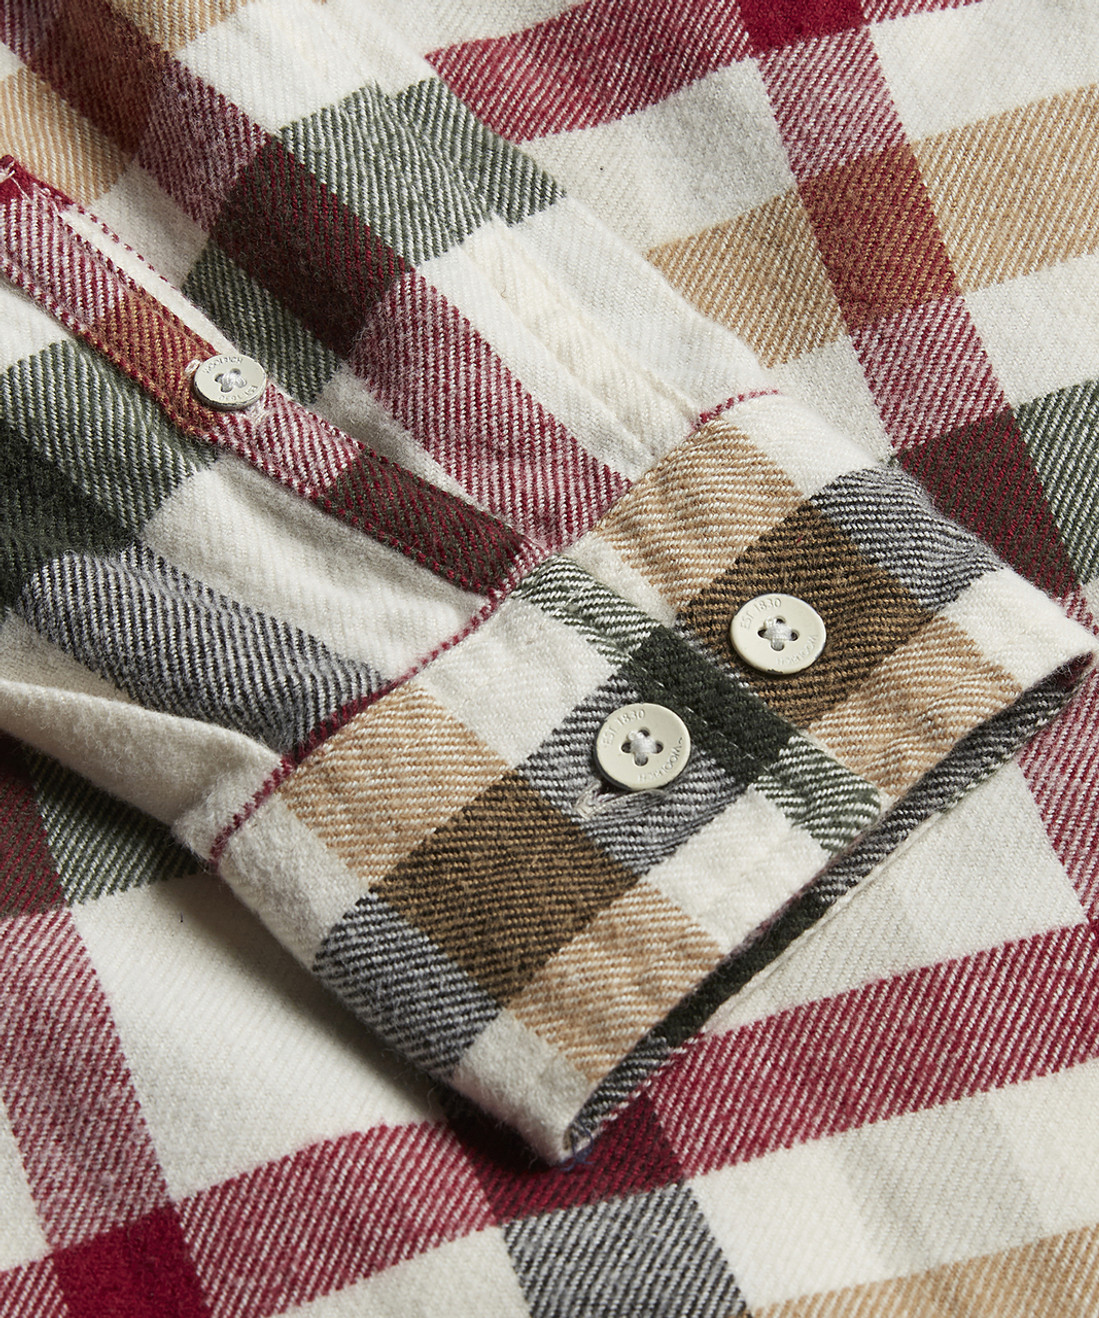 Women's Pemberton Flannel Shirt - 100% Cotton